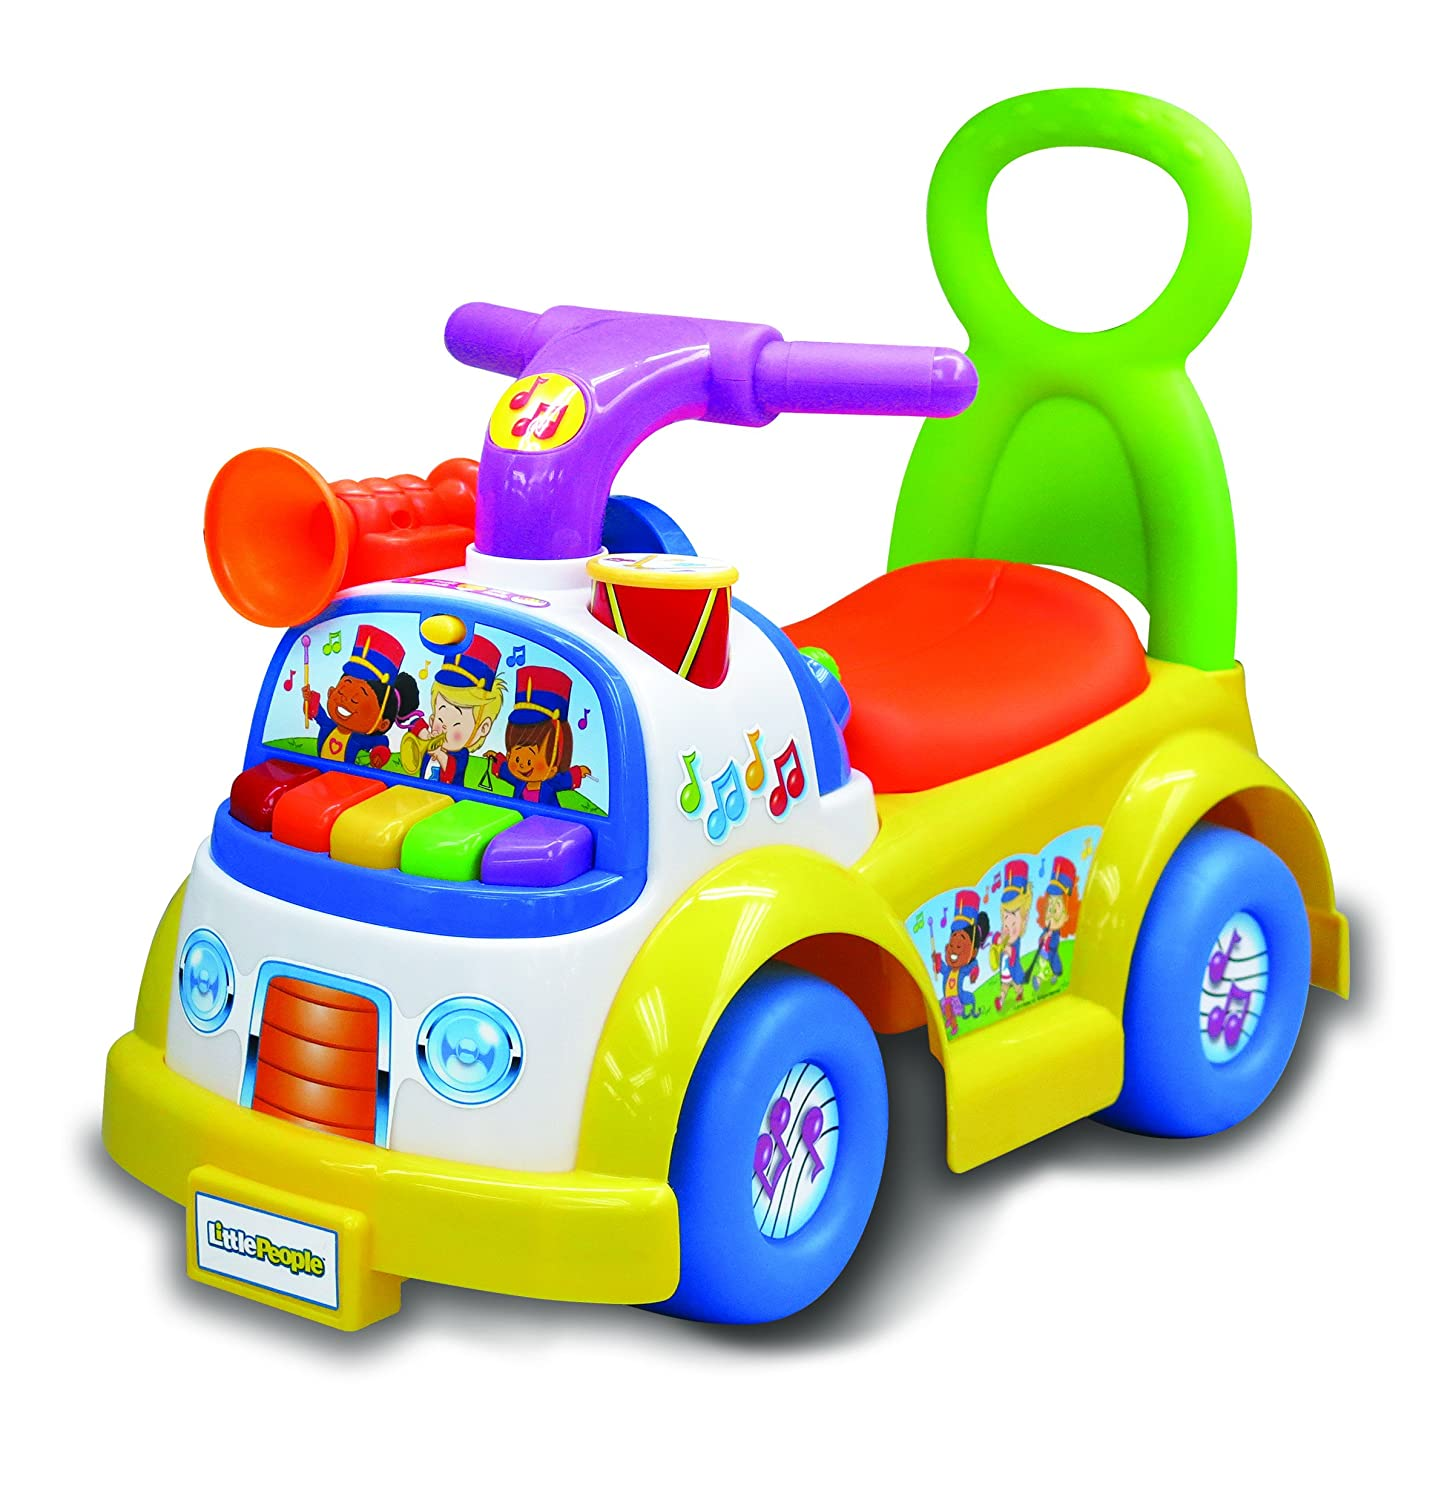 Top 15 Best Riding Toys for 1 Year Olds Reviews in 2020 13